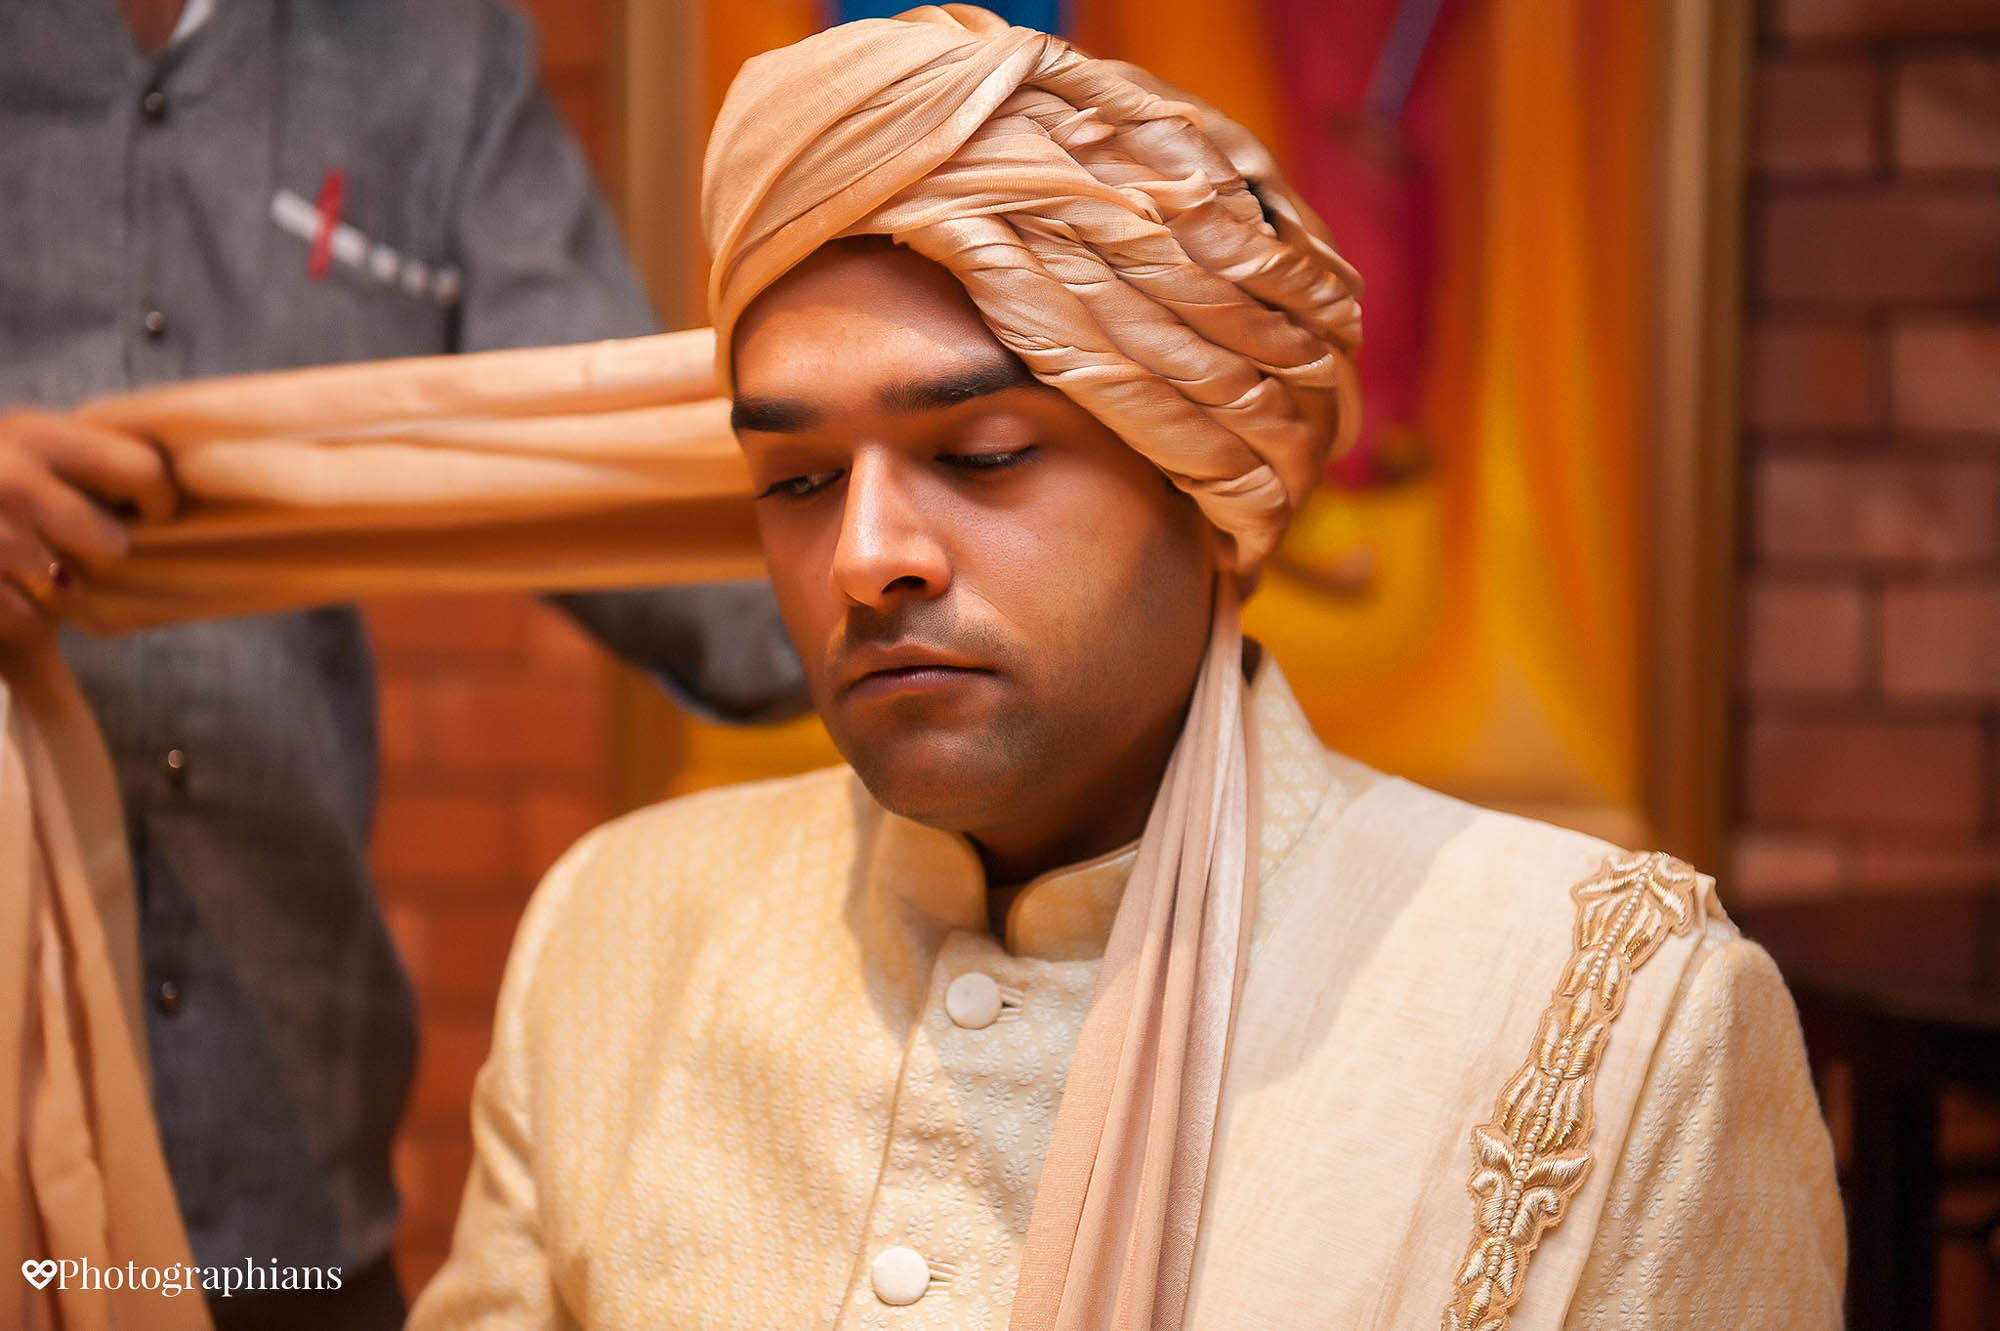 Punjabi_Marwari_Wedding_Kolkata_Photographians_-VIDHI-159